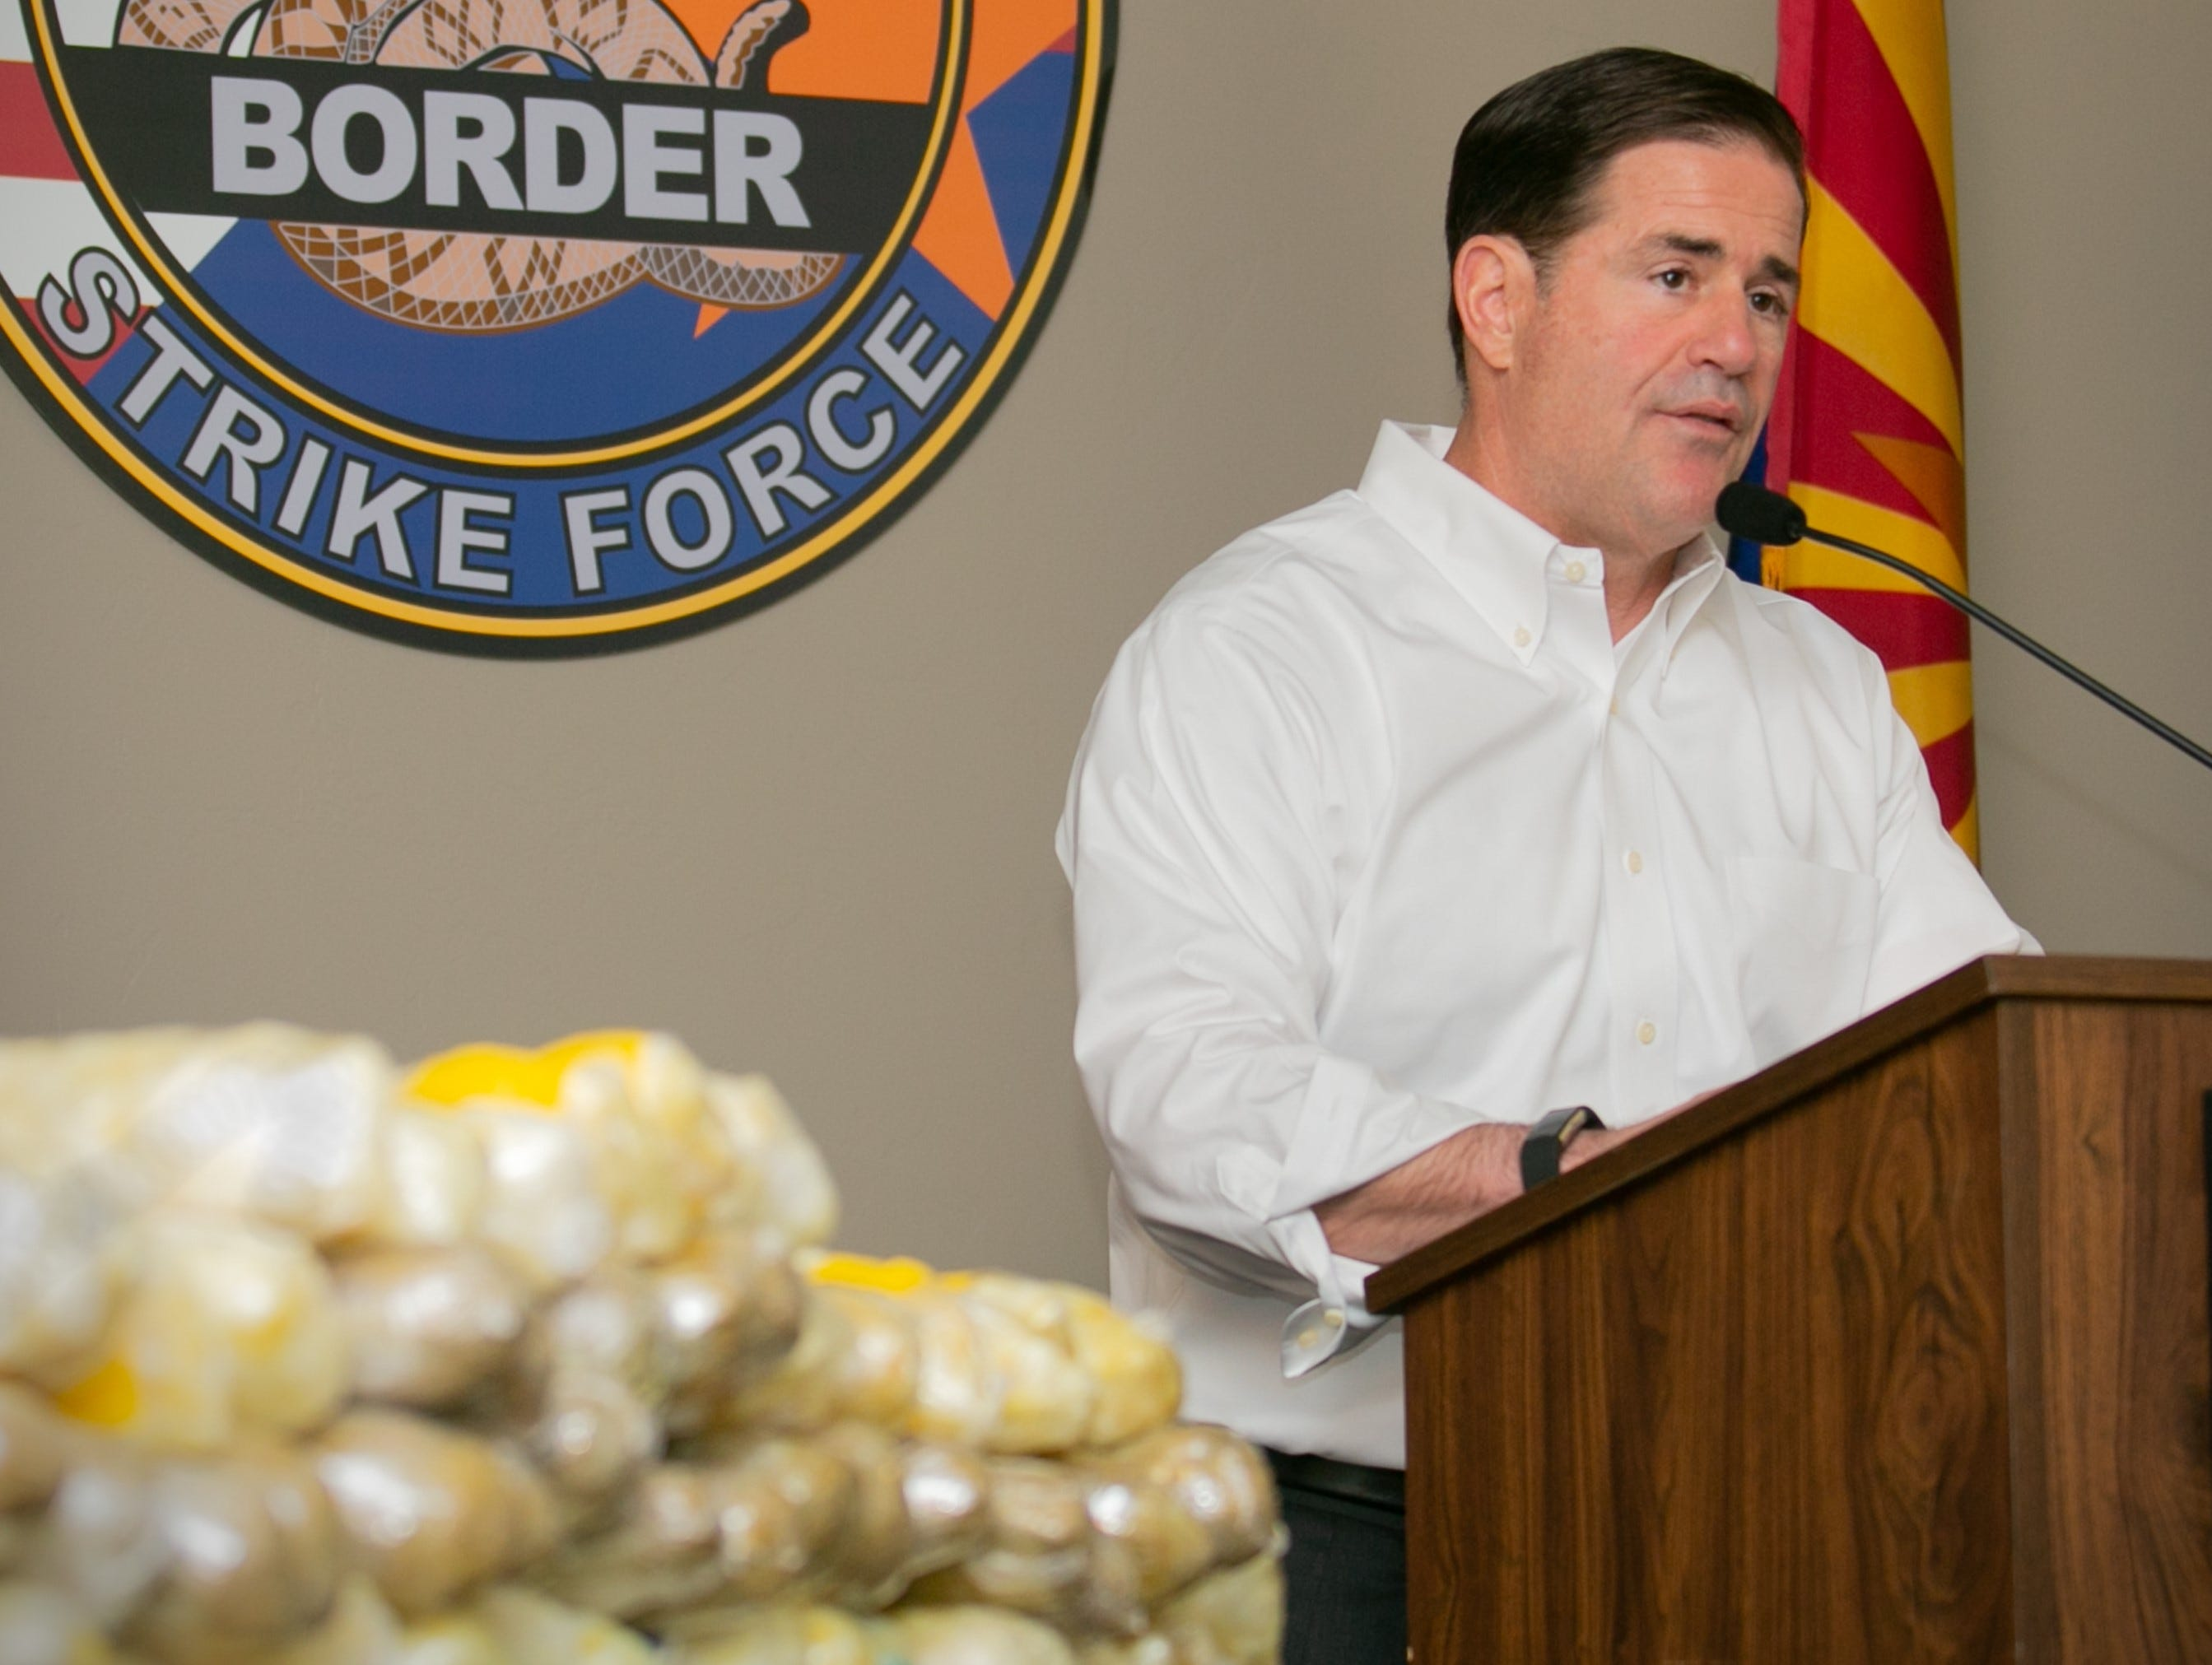 Arizona Gov. Doug Ducey speaks on Sept. 17, 2018, in Tucson about about the Border Strike Force's seizure of 225 pounds of methamphetamine by troopers during three traffic stops on southern Arizona freeways.